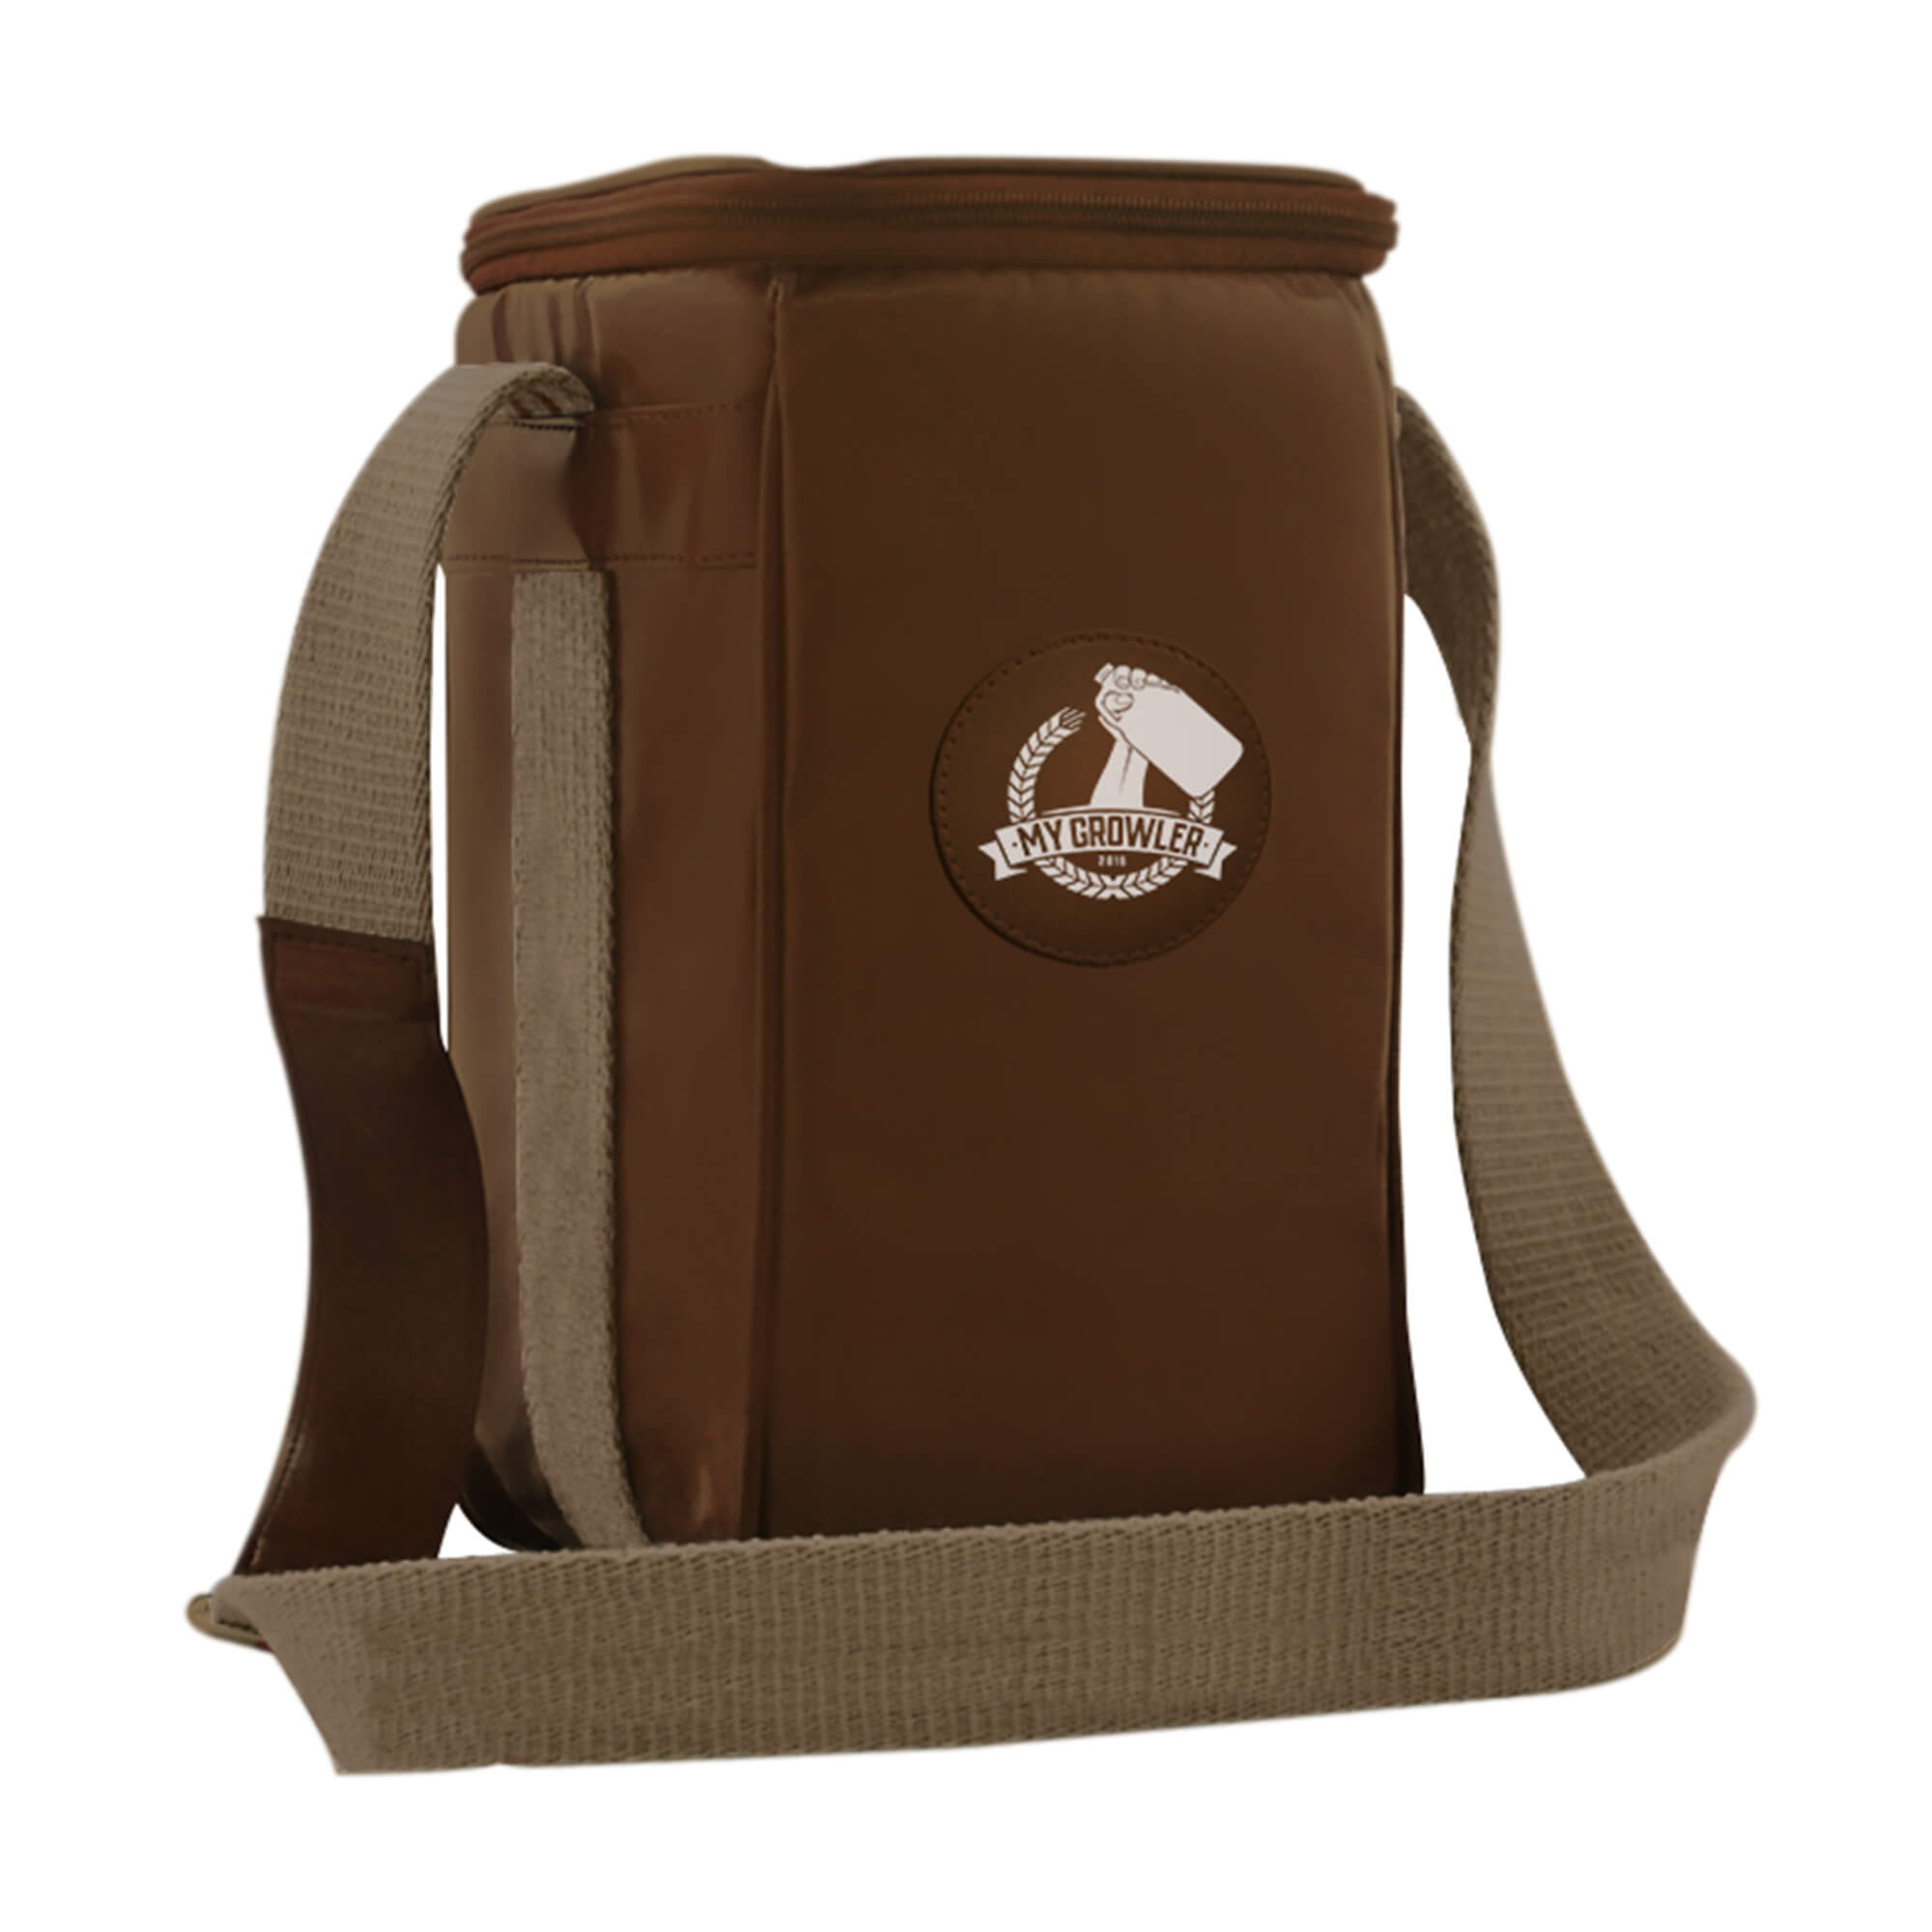 GROWLER BAG TRAVEL PARA 1 GROWLER - MARROM